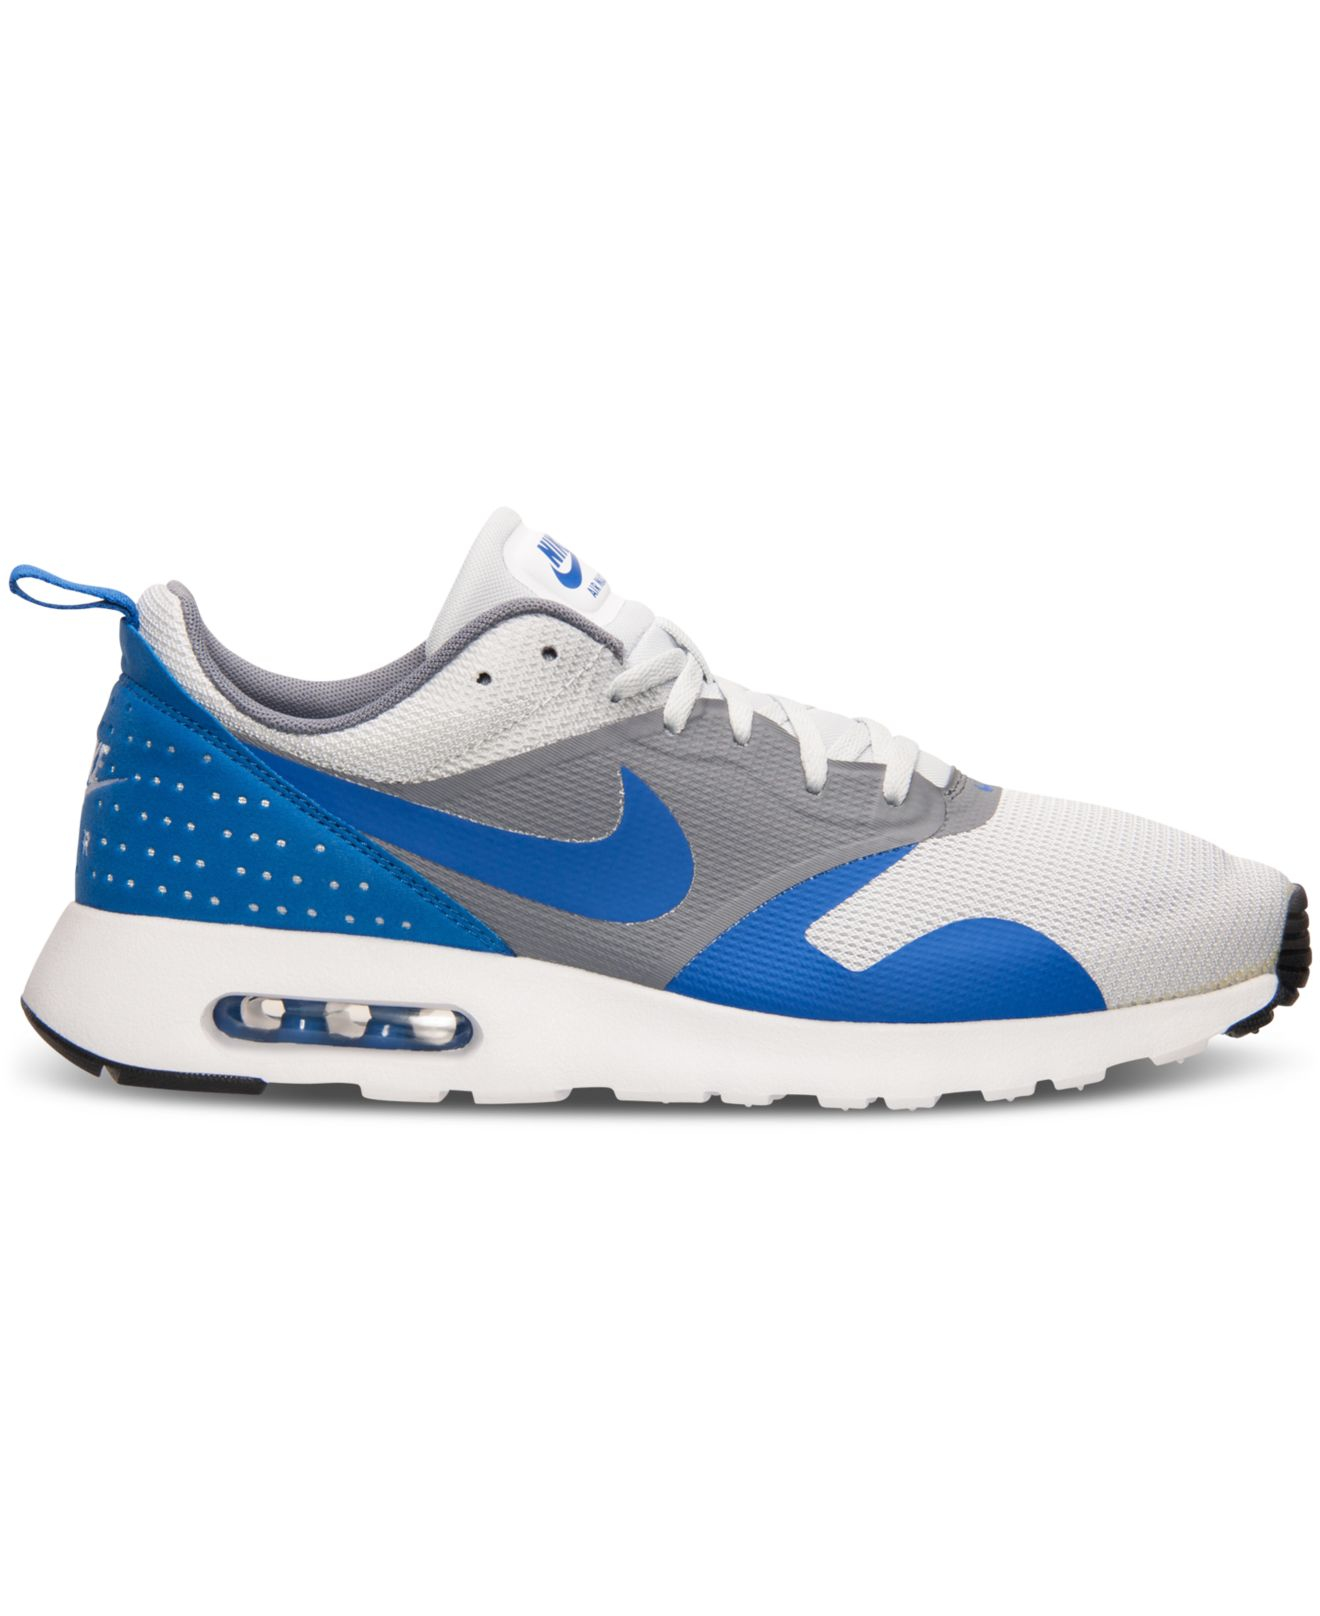 official photos e6aca 1478a Lyst - Nike Men s Air Max Tavas Running Sneakers From Finish Line in Blue  for Men